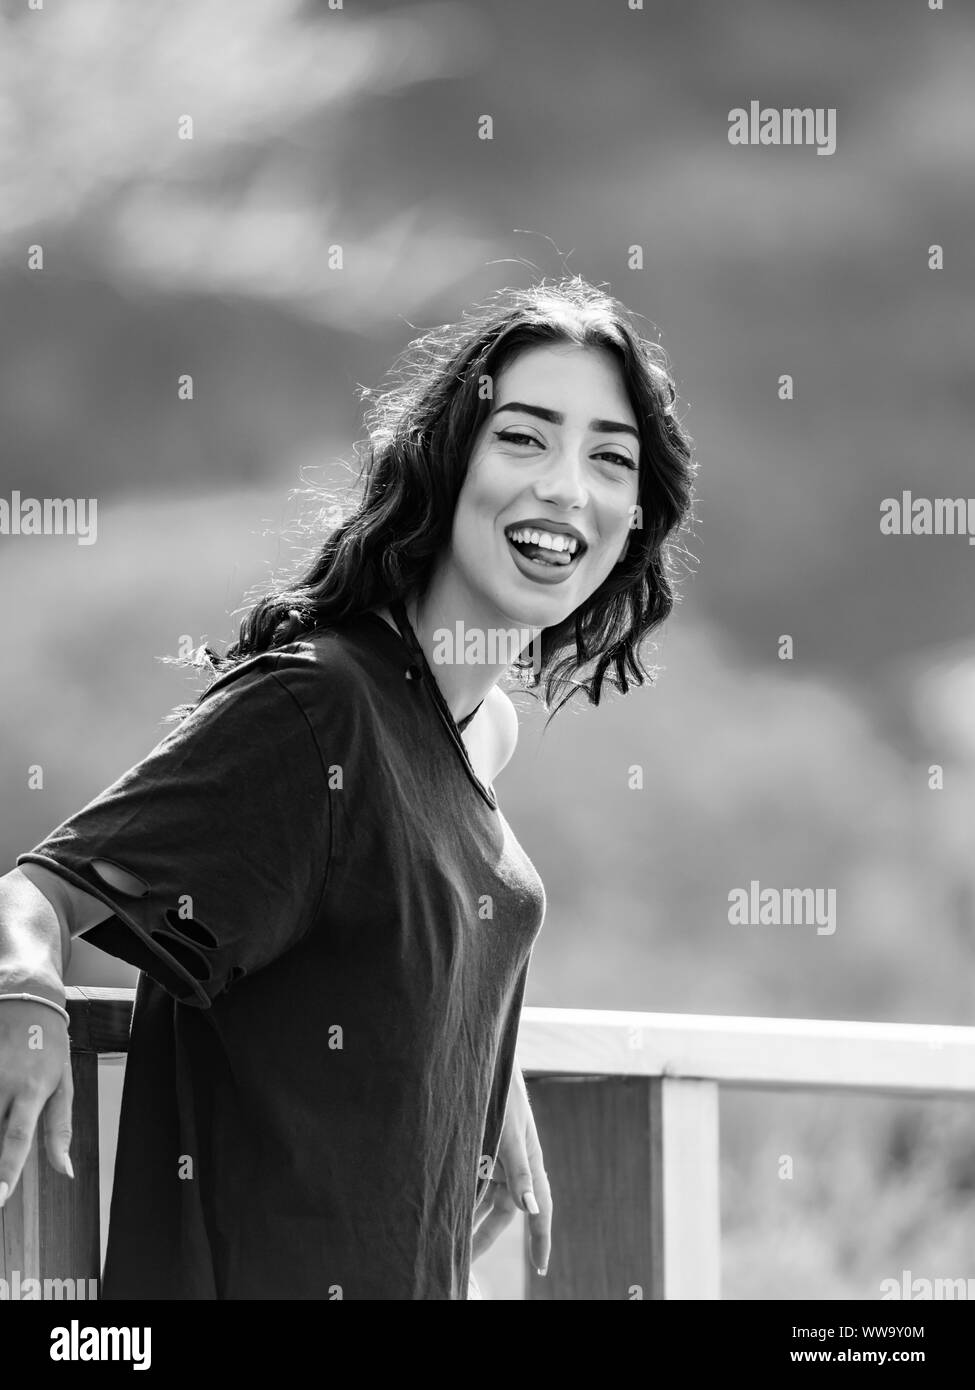 Teen girl is happy eyeshot eye eyes-contact looking at camera squinting squint B&W Black and White monochrome retro big smile Stock Photo